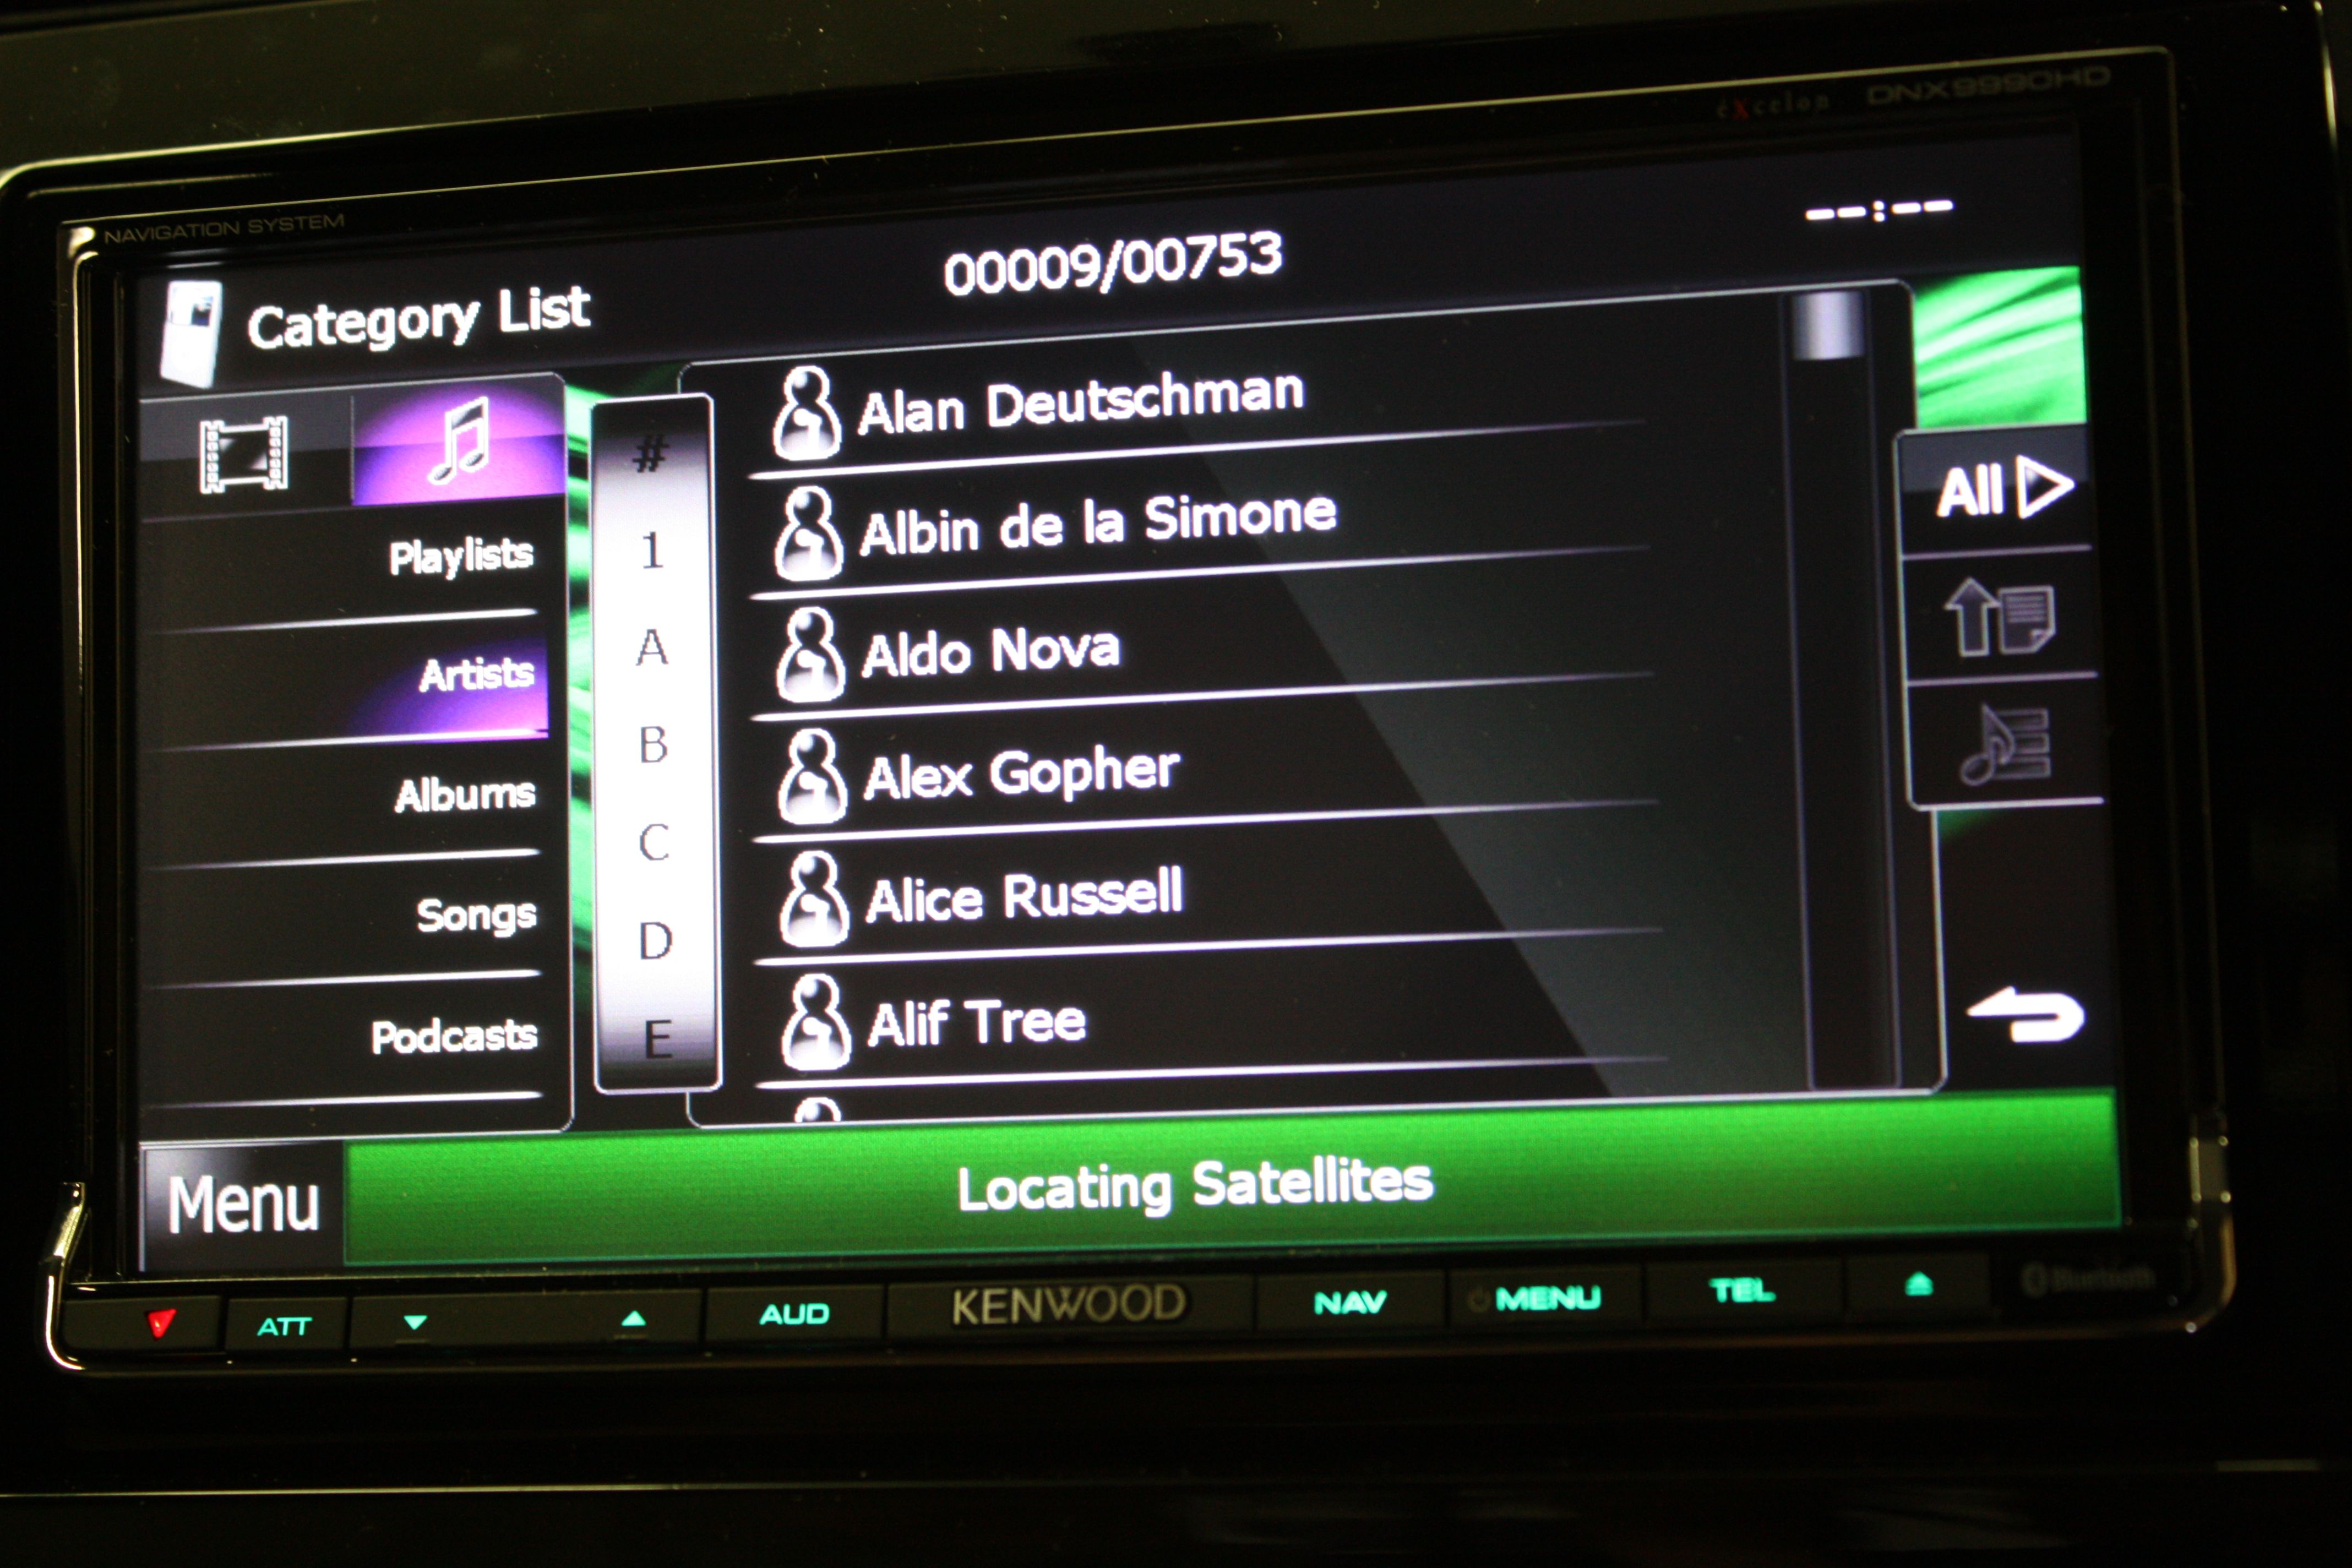 Kenwood Dnx9990hd Wiring Diagram Android Pandora Ddx419 Car Stereo Diagrams Model